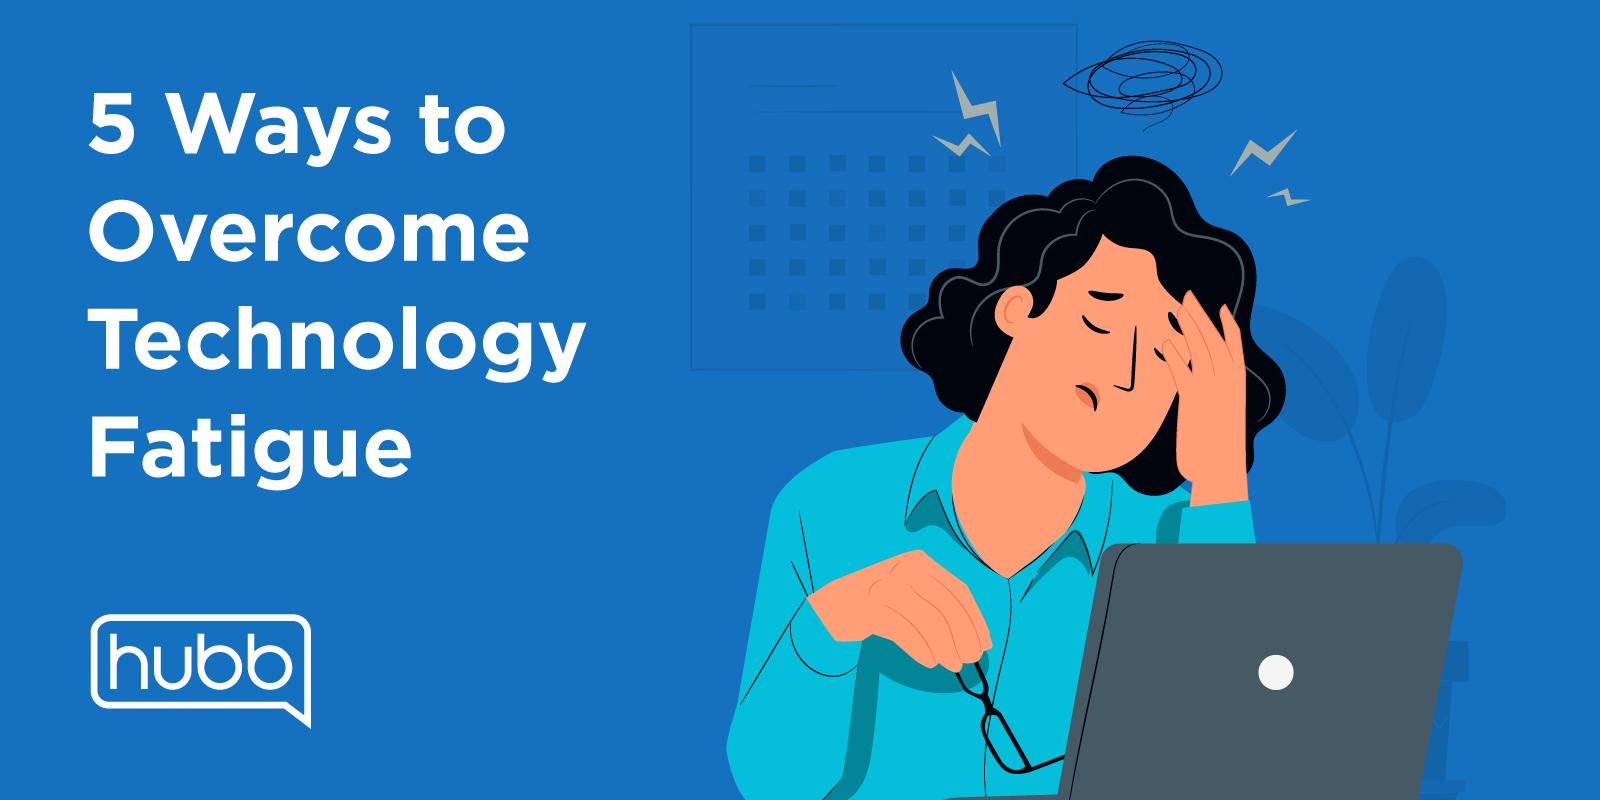 5 Ways to Overcome Technology Fatigue